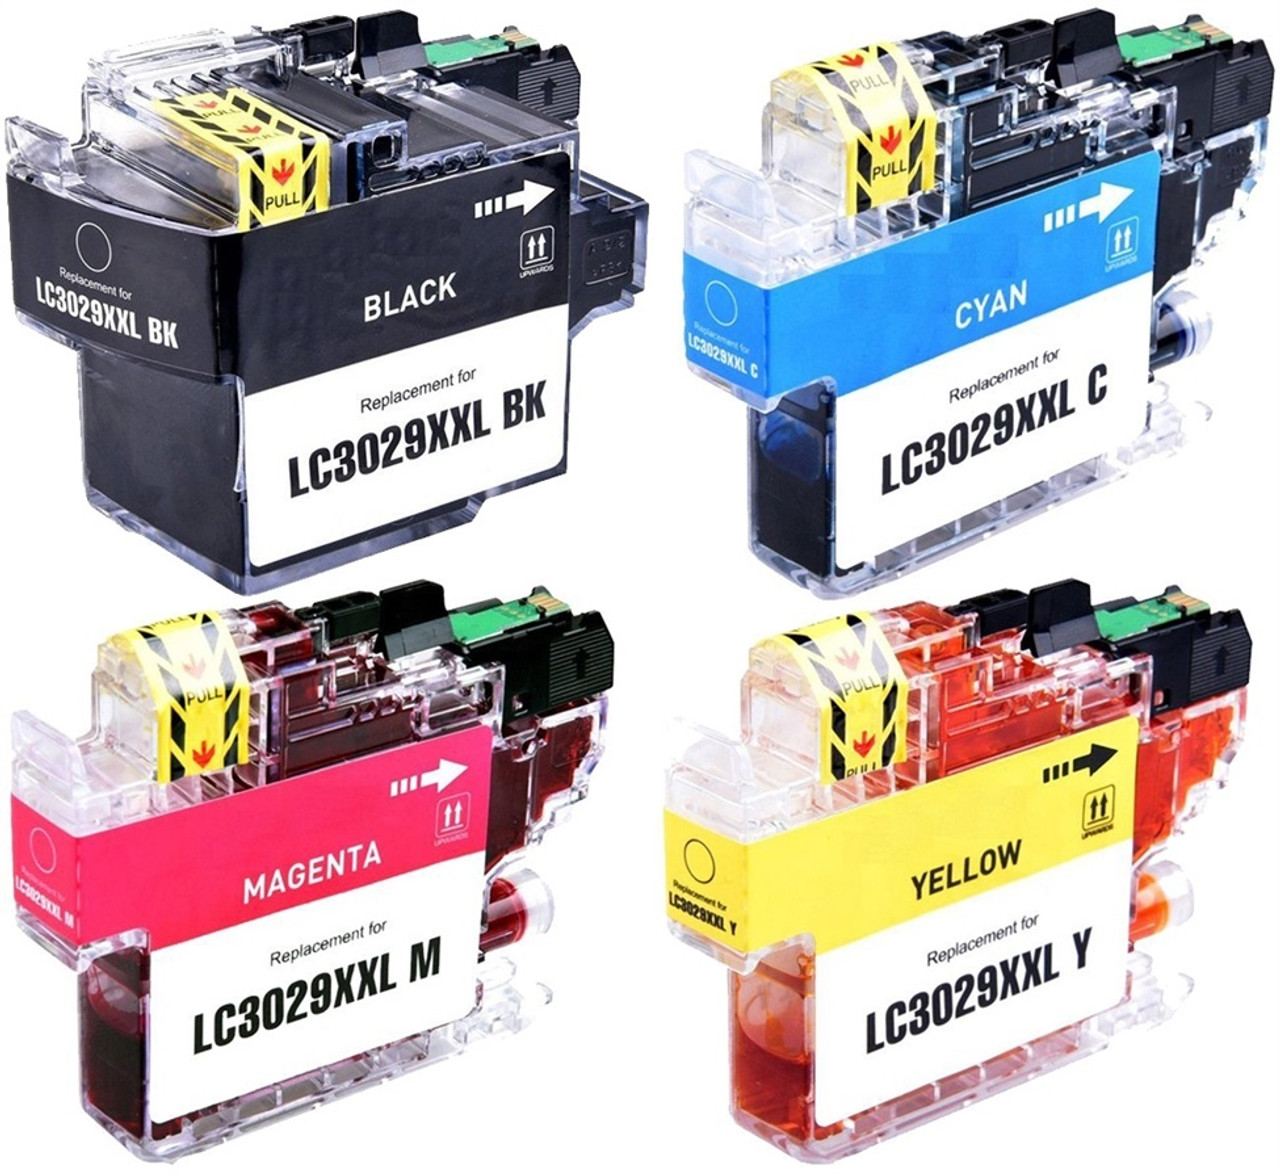 Brother Lc3029xxl Compatible Ink Cartridge Extra High Yield 1 Set Ricoh Color Copier Aficio Mp C2800 C3300 Service Manual Of 4